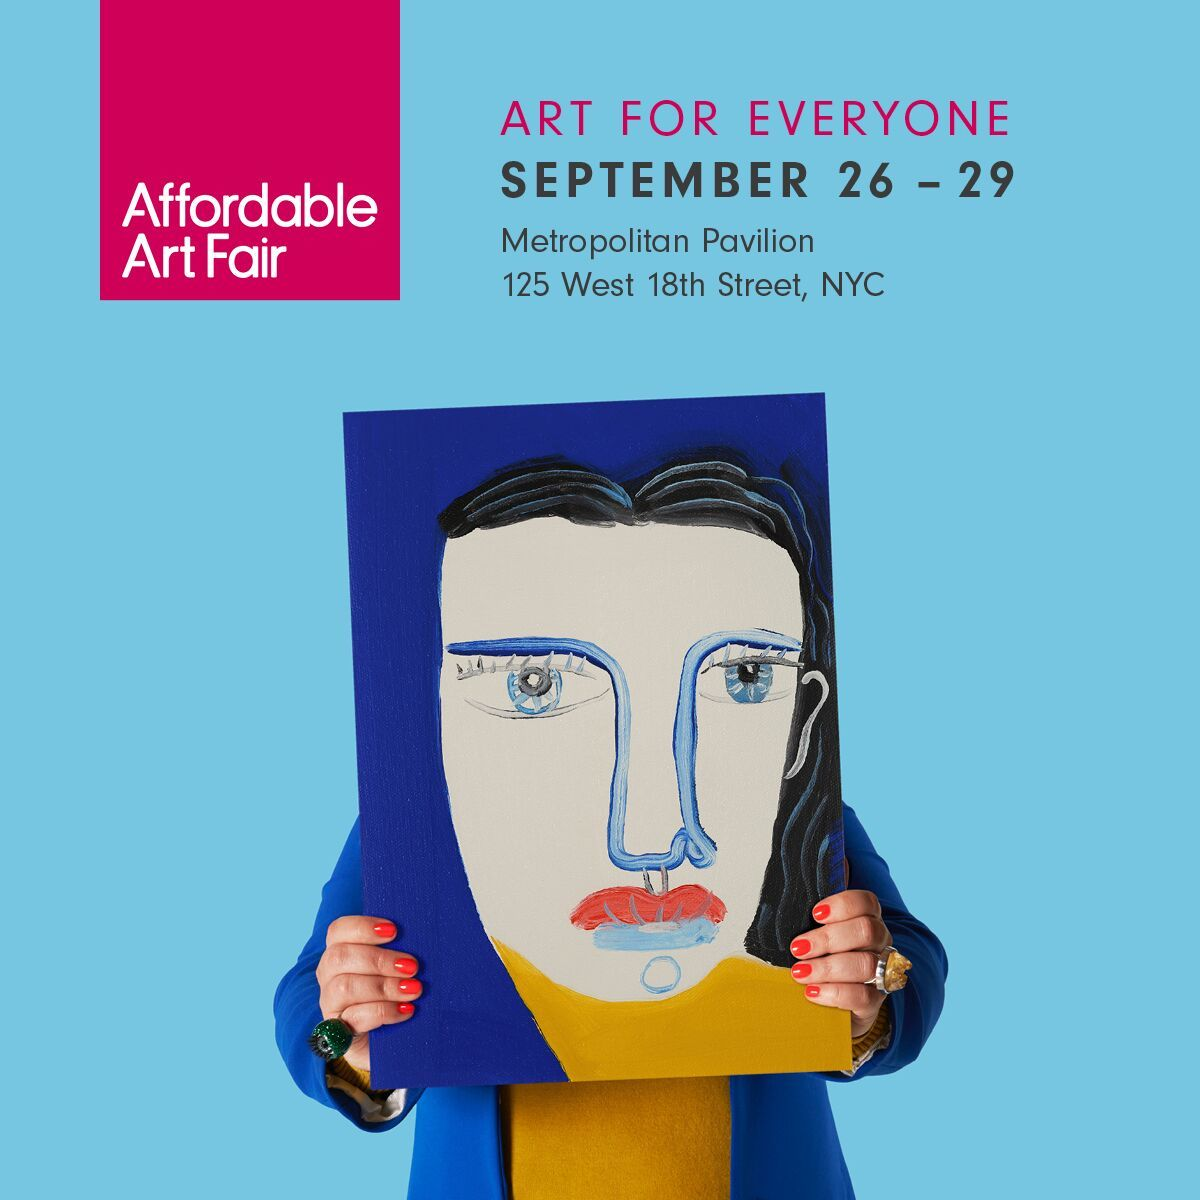 fall art guide, art, features, museums, galleries, met, moma, american folk art museum, whitney, bronx museum